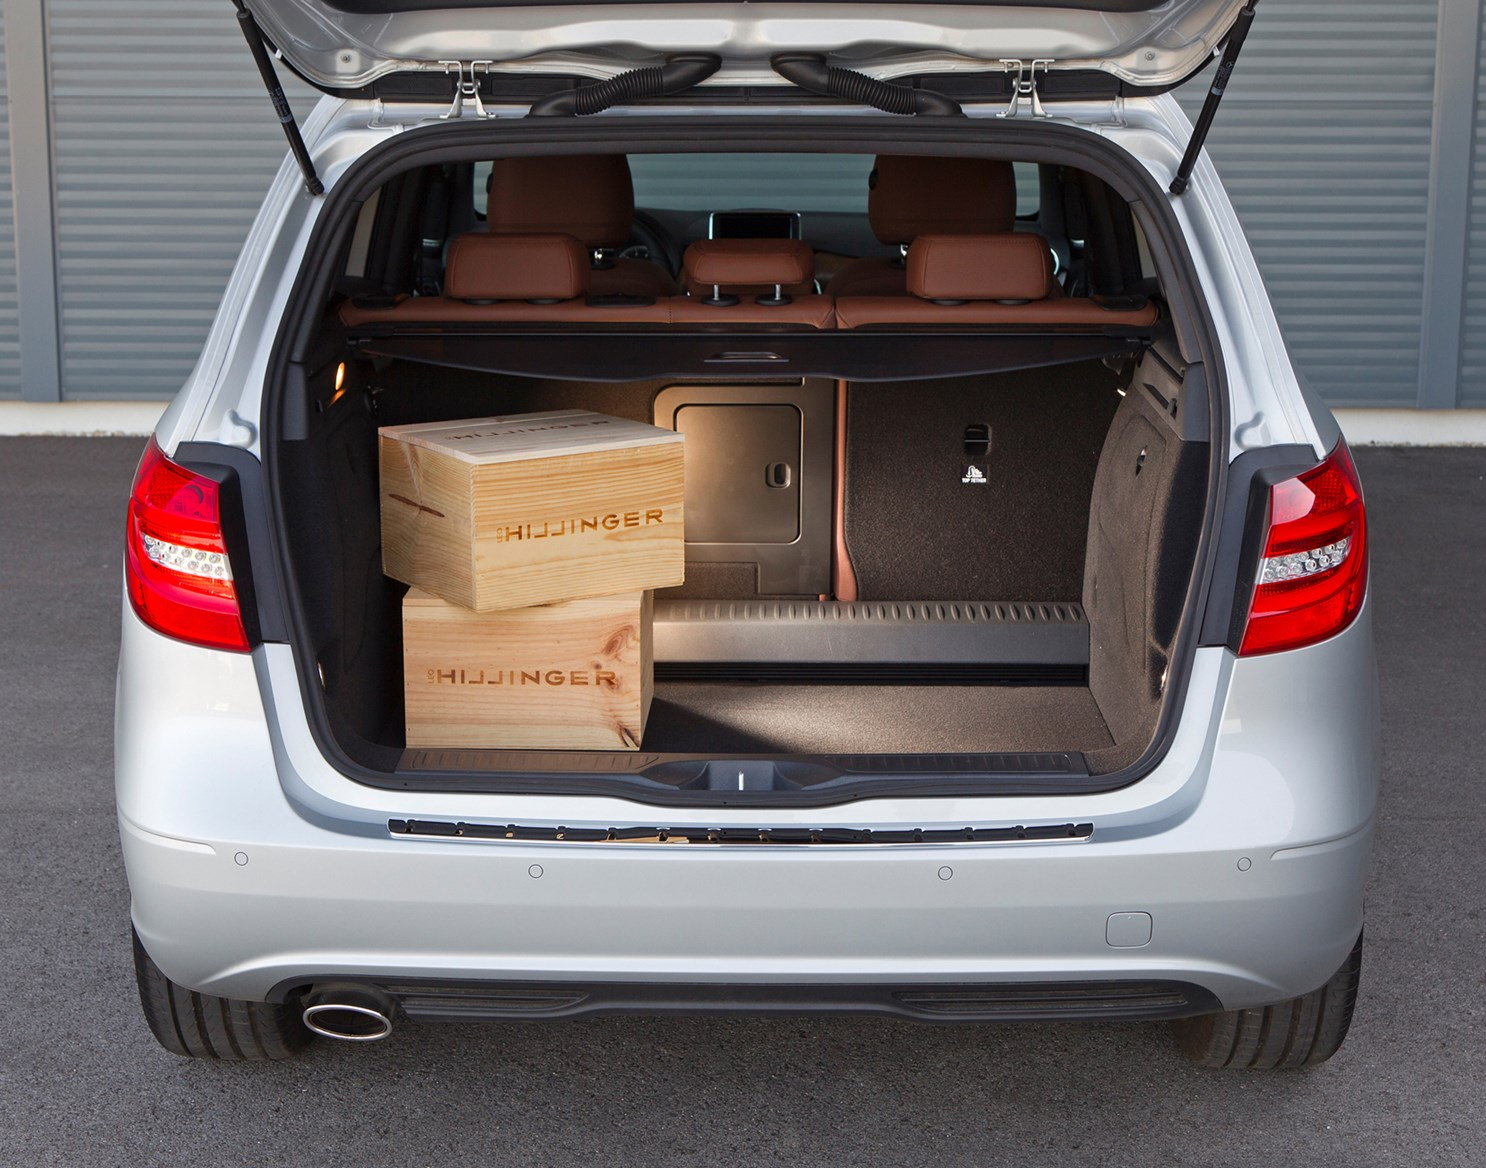 mercedes benz b class estate review 2012 parkers. Black Bedroom Furniture Sets. Home Design Ideas